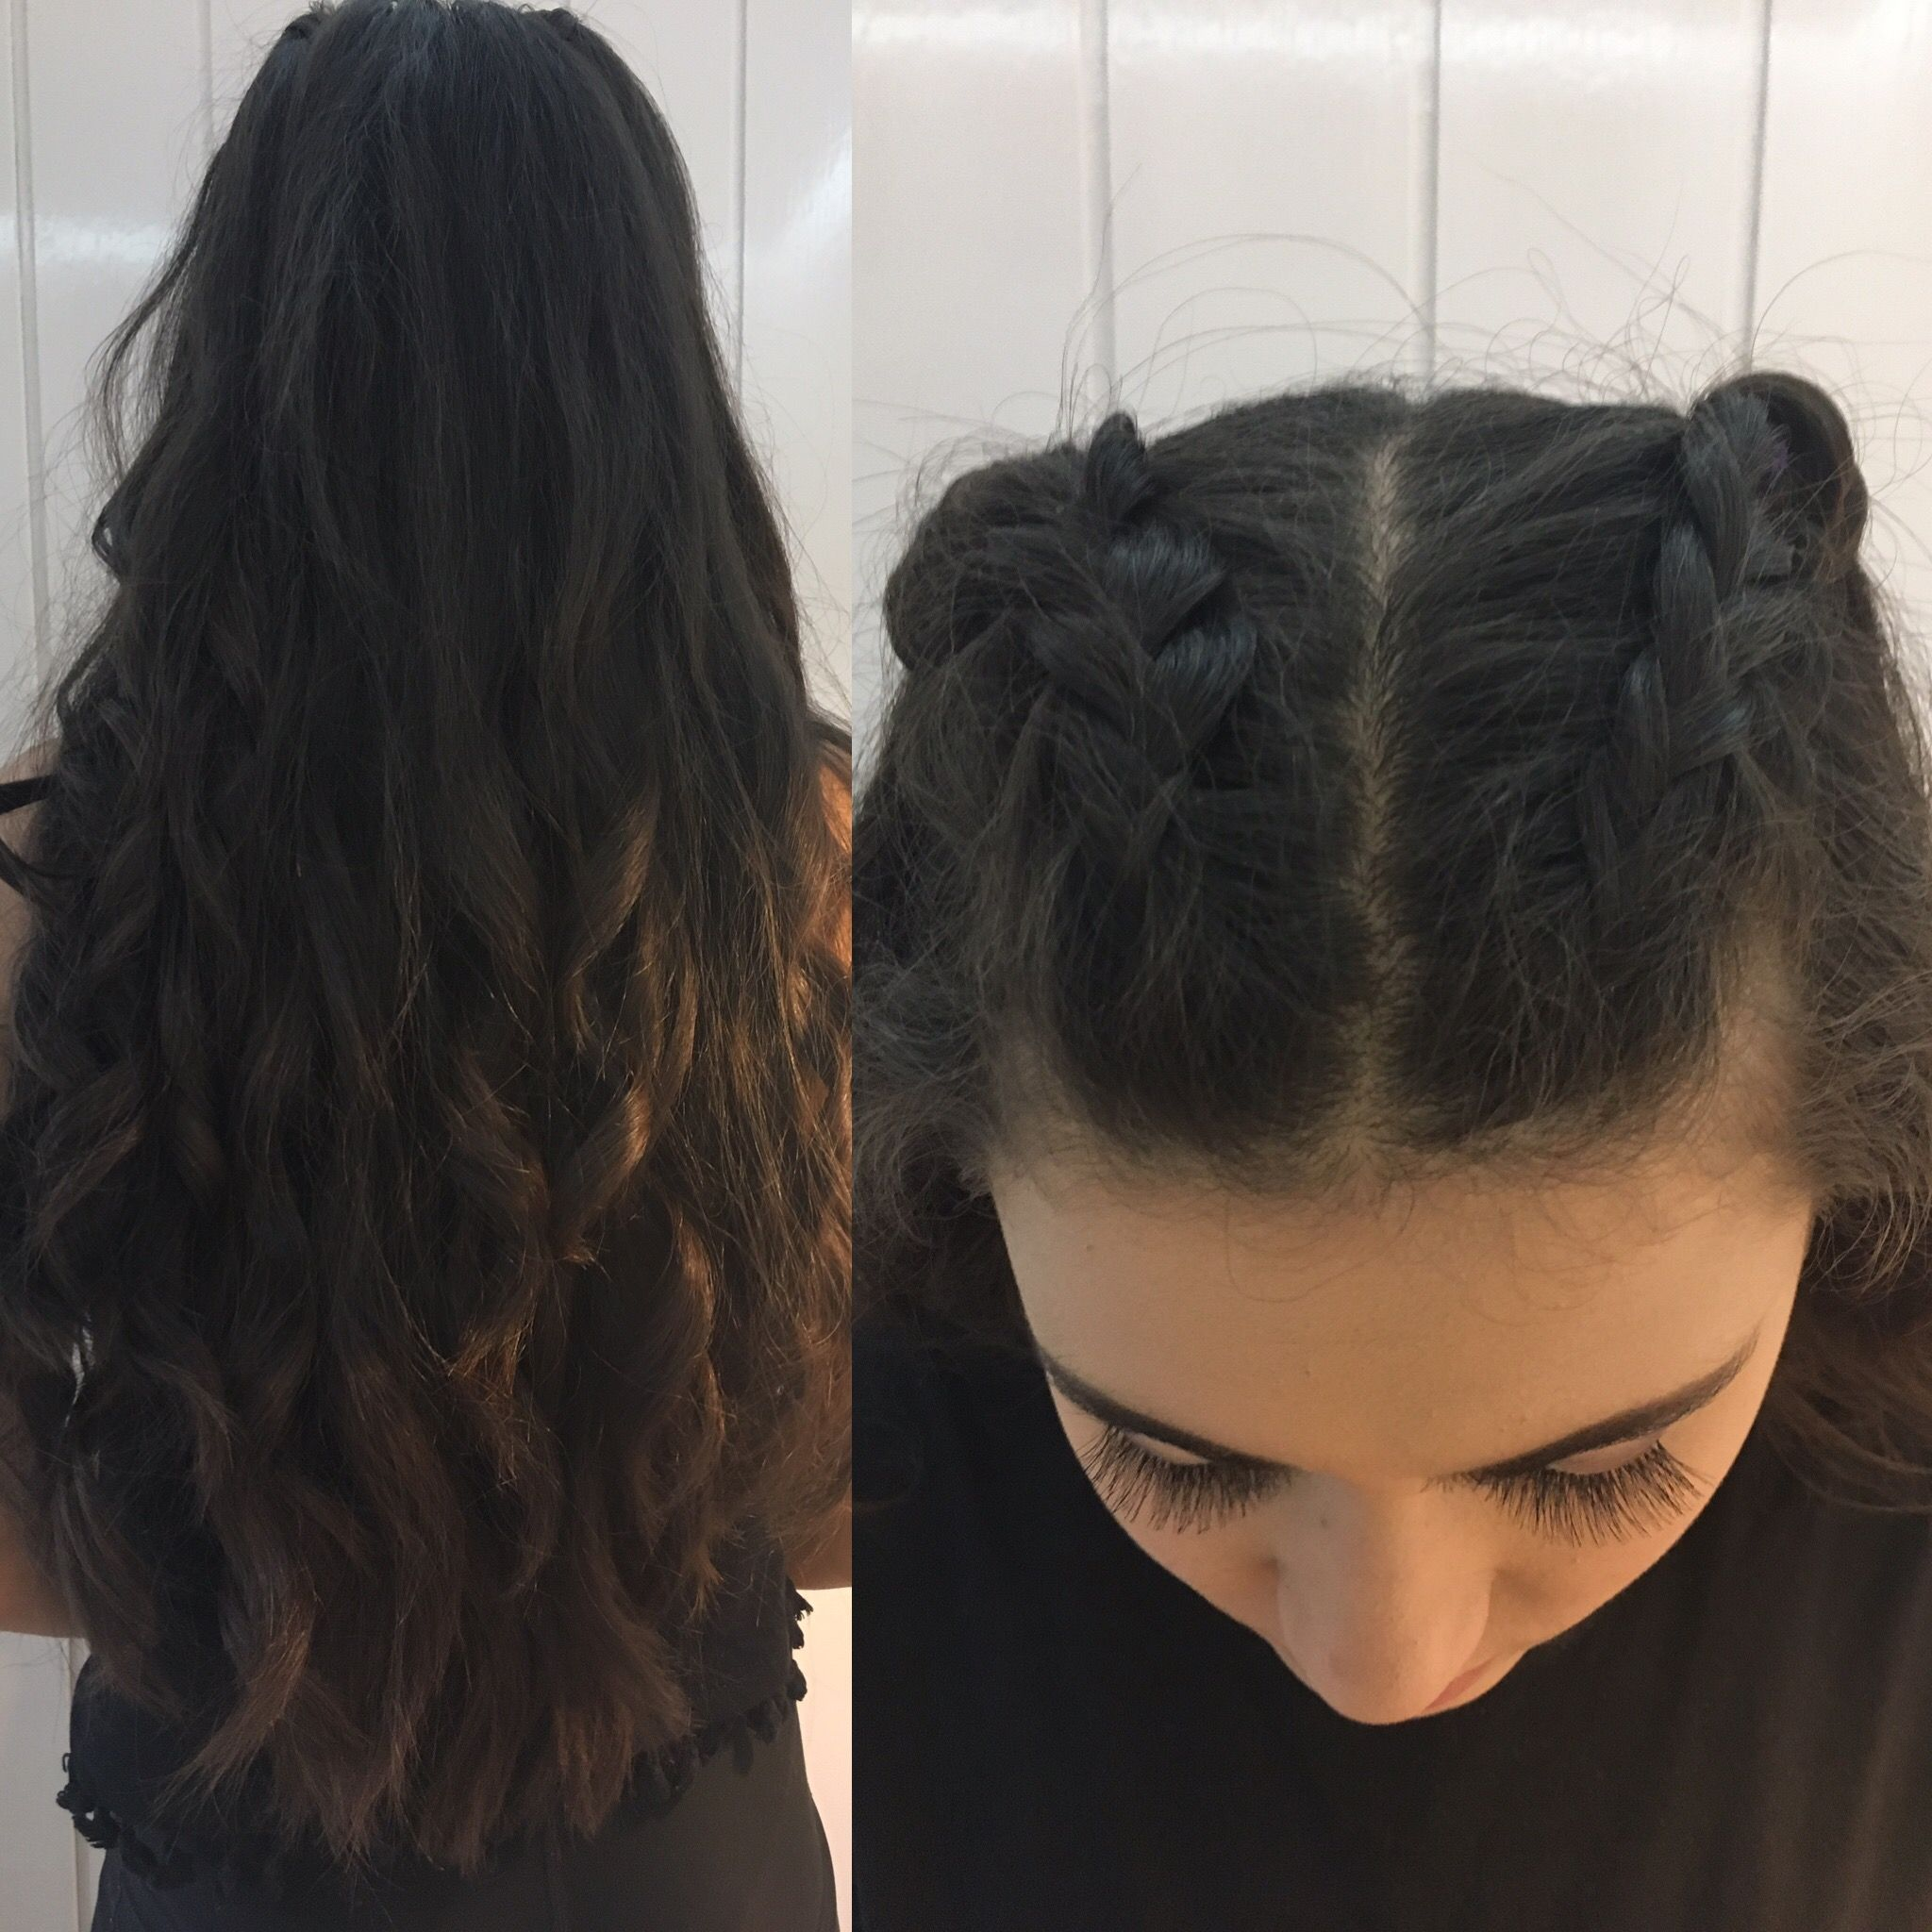 Prom Hair Two French Braids Only Done Half Way And Then The Rest Is Down And Curled Prom Hair Promh Two French Braids Two Braid Hairstyles Debs Hairstyles